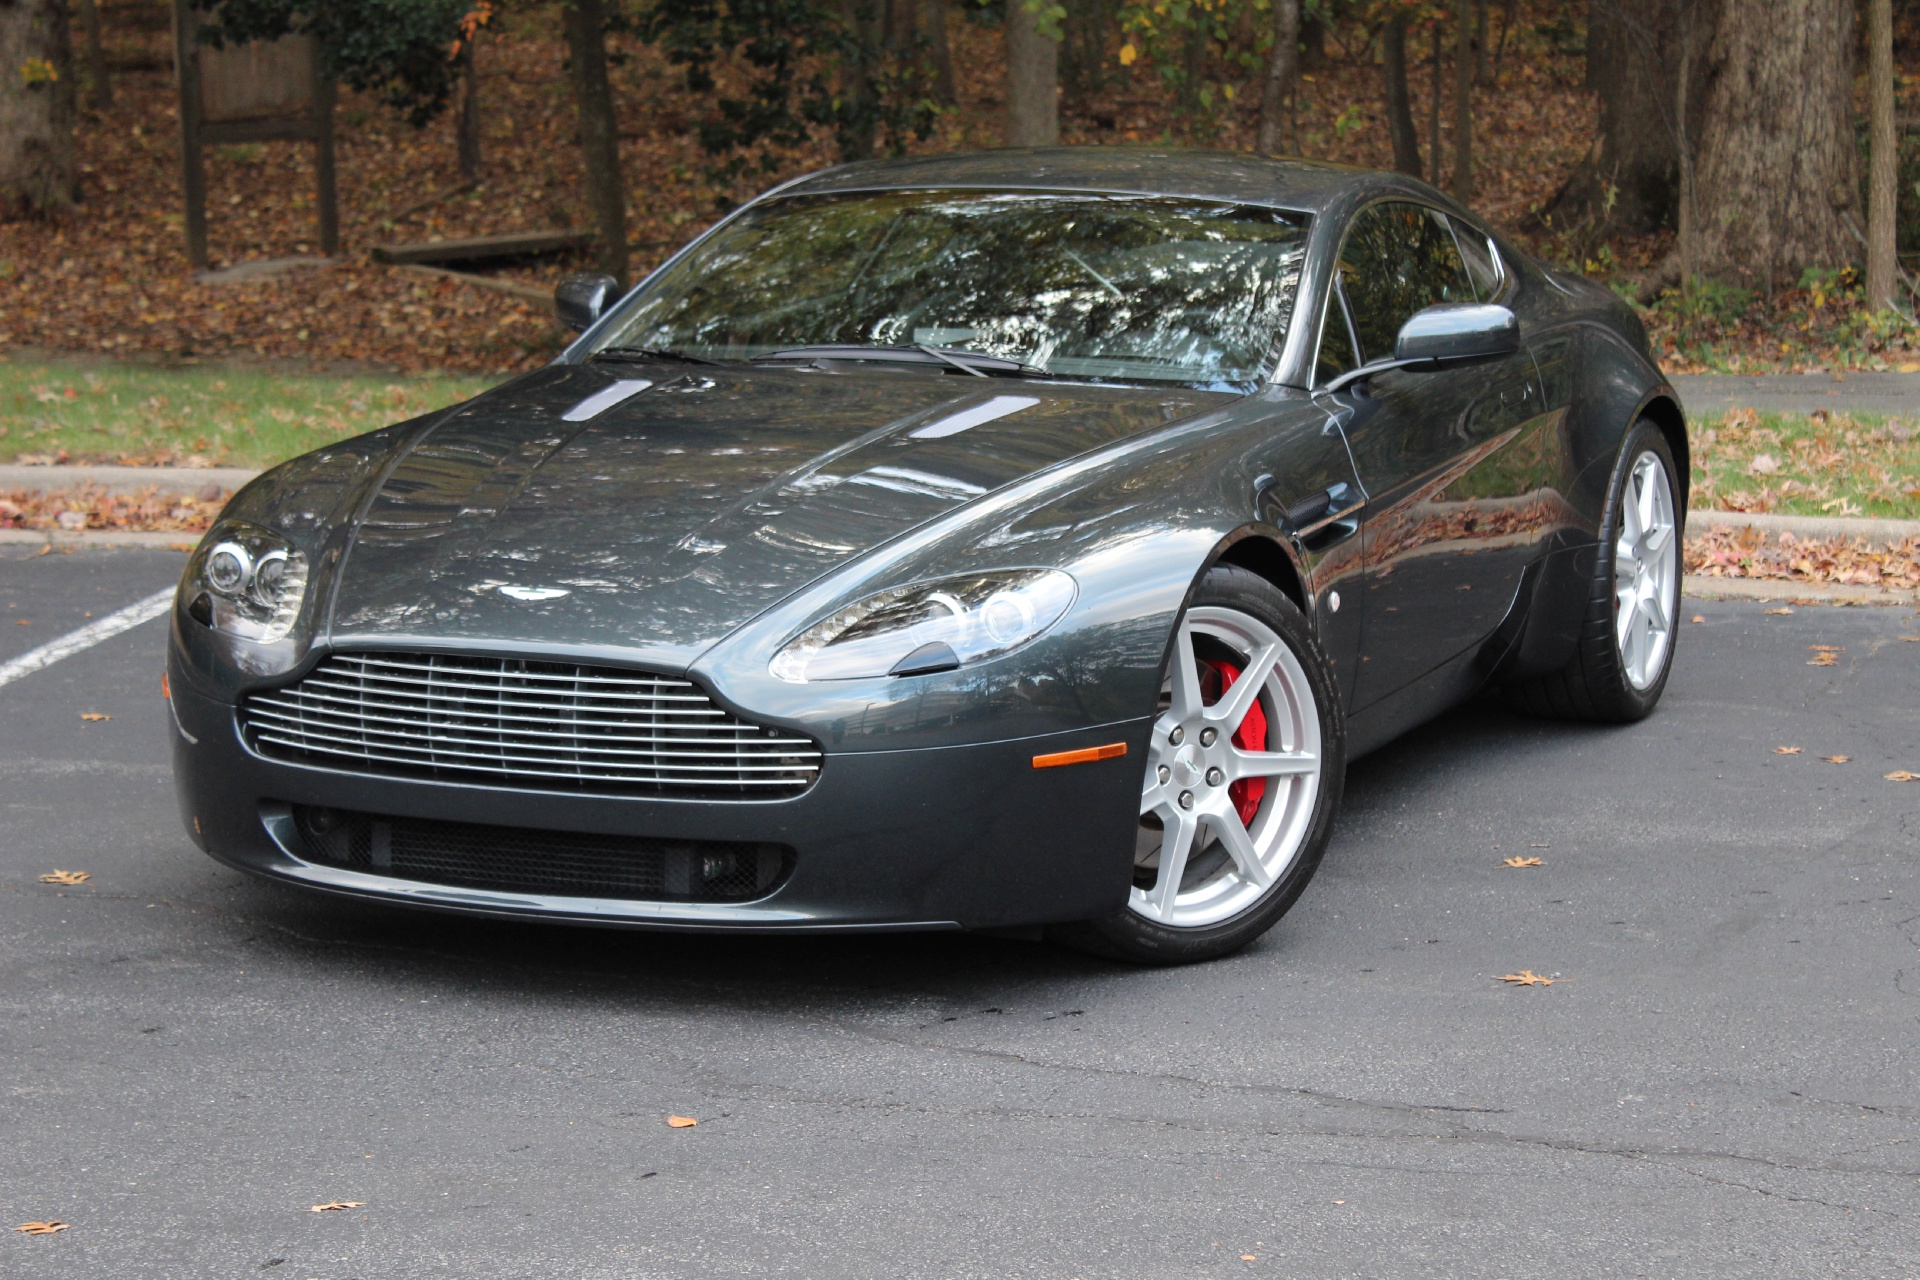 2008 Aston Martin Vantage Stock P09203 For Sale Near Vienna Va Va Aston Martin Dealer